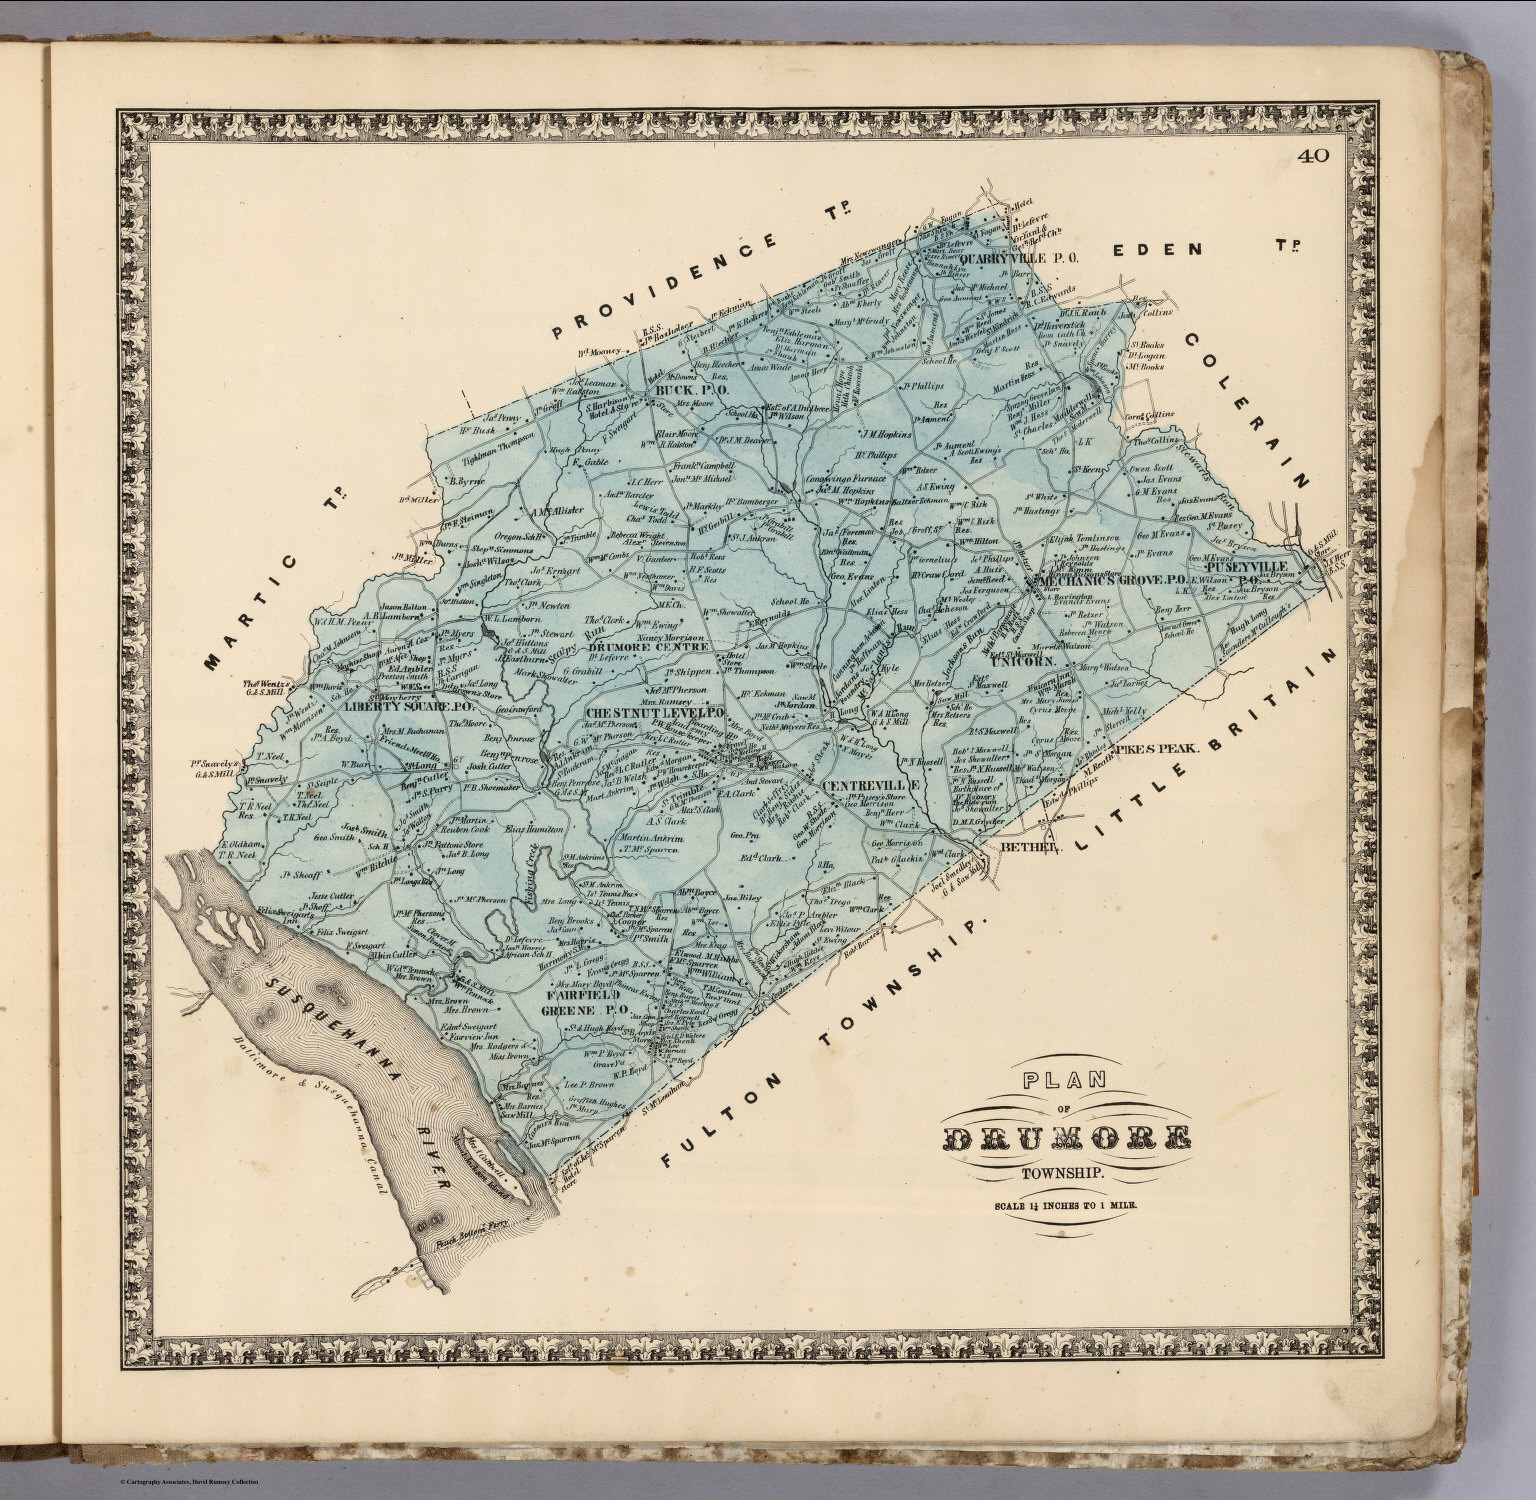 Lancaster County Pa Historical Map on ronks pa map, map lancaster pa attractions map, warwick pa map, lititz pa map, lancaster co map, pa school district map, lancaster county municipalities, streets of new holland pa map, lancaster ca zip code map, bucks county pa historical map, lancaster city street map,